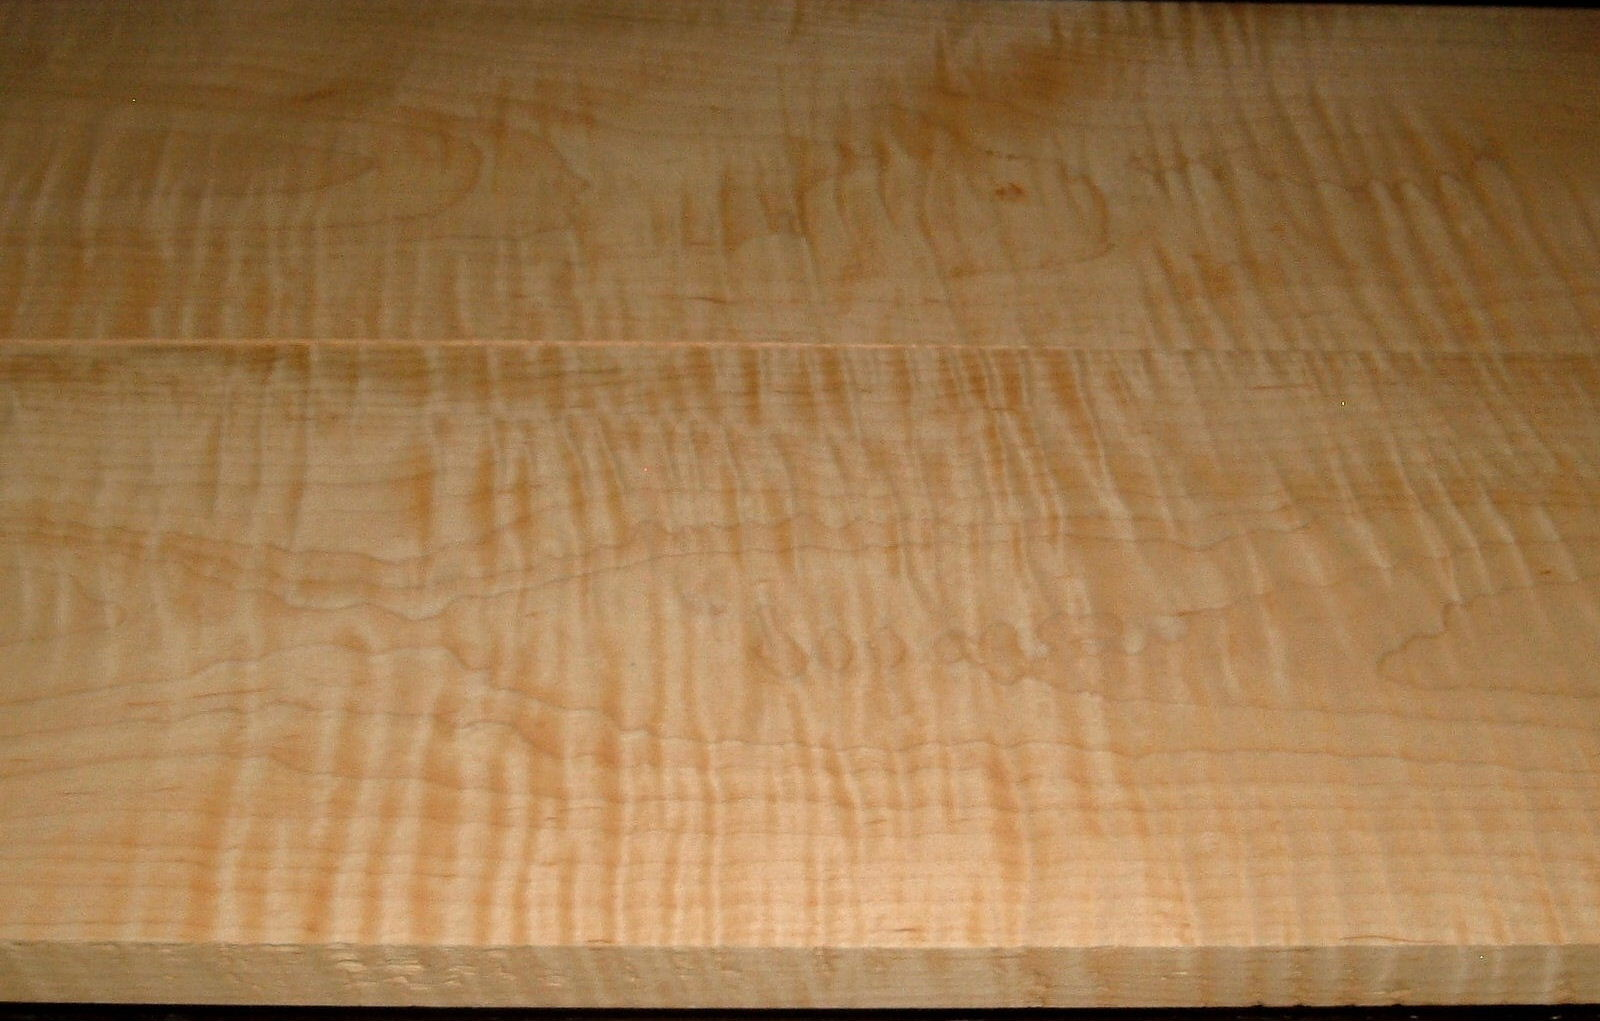 M2004-356, 2 Bd Set +7/8 x8-1/2x42, +15/16 x9x42, Curly Tiger Maple, Cut from same Plank